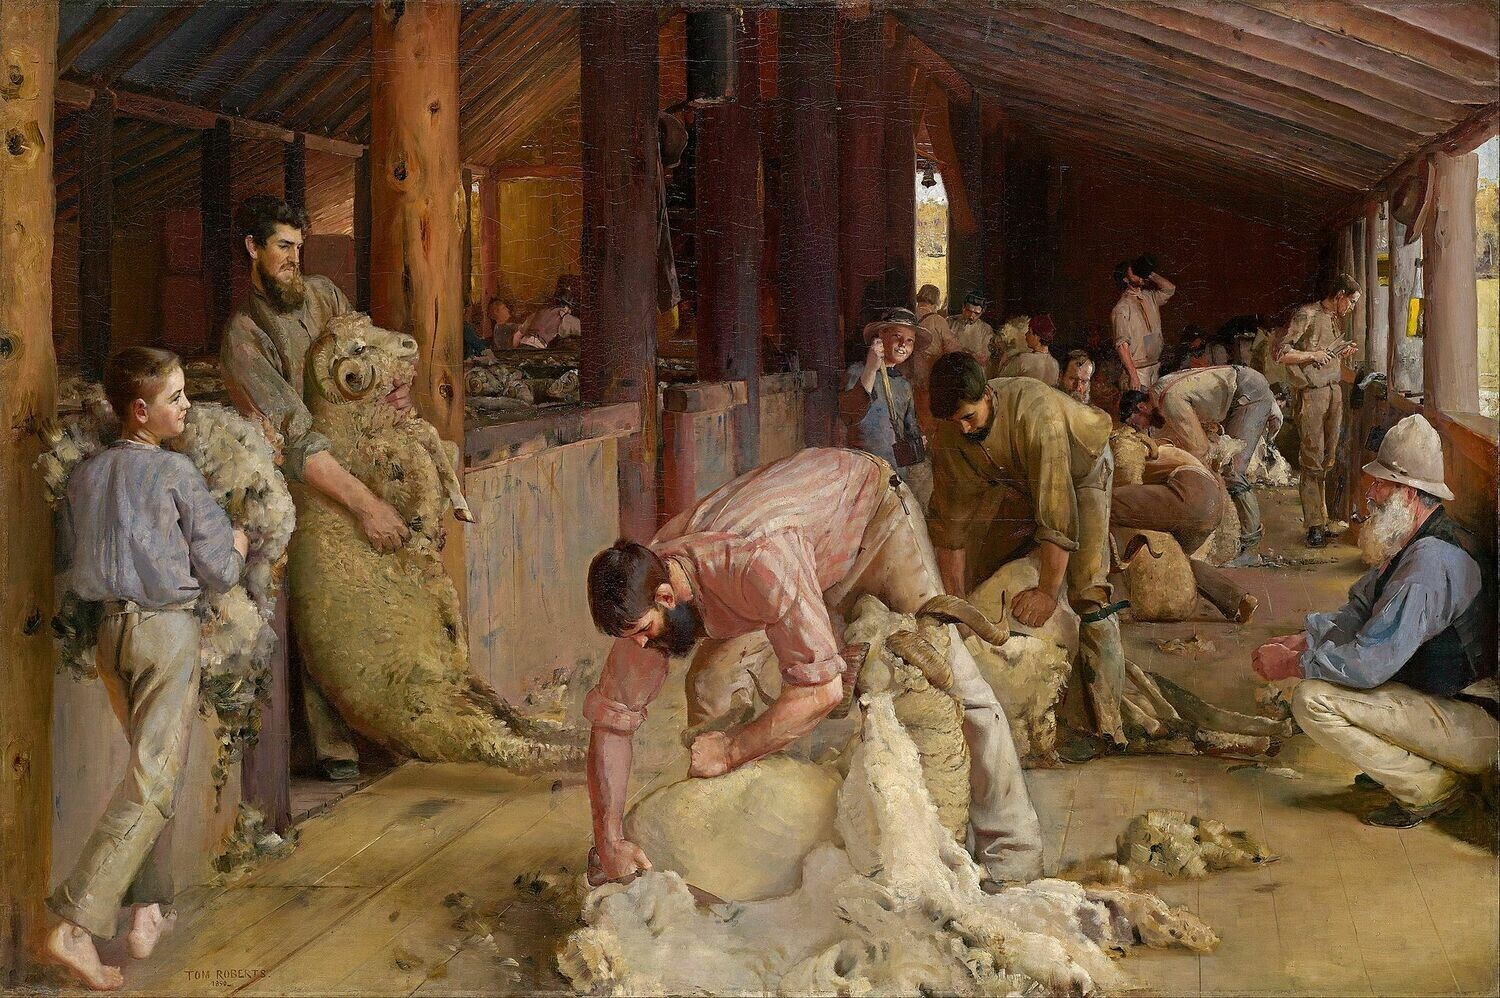 Shearing the Rams - 61 x 91.5cm (poster size) Full Drill (Round) Diamond Painting Kit - Currently in stock